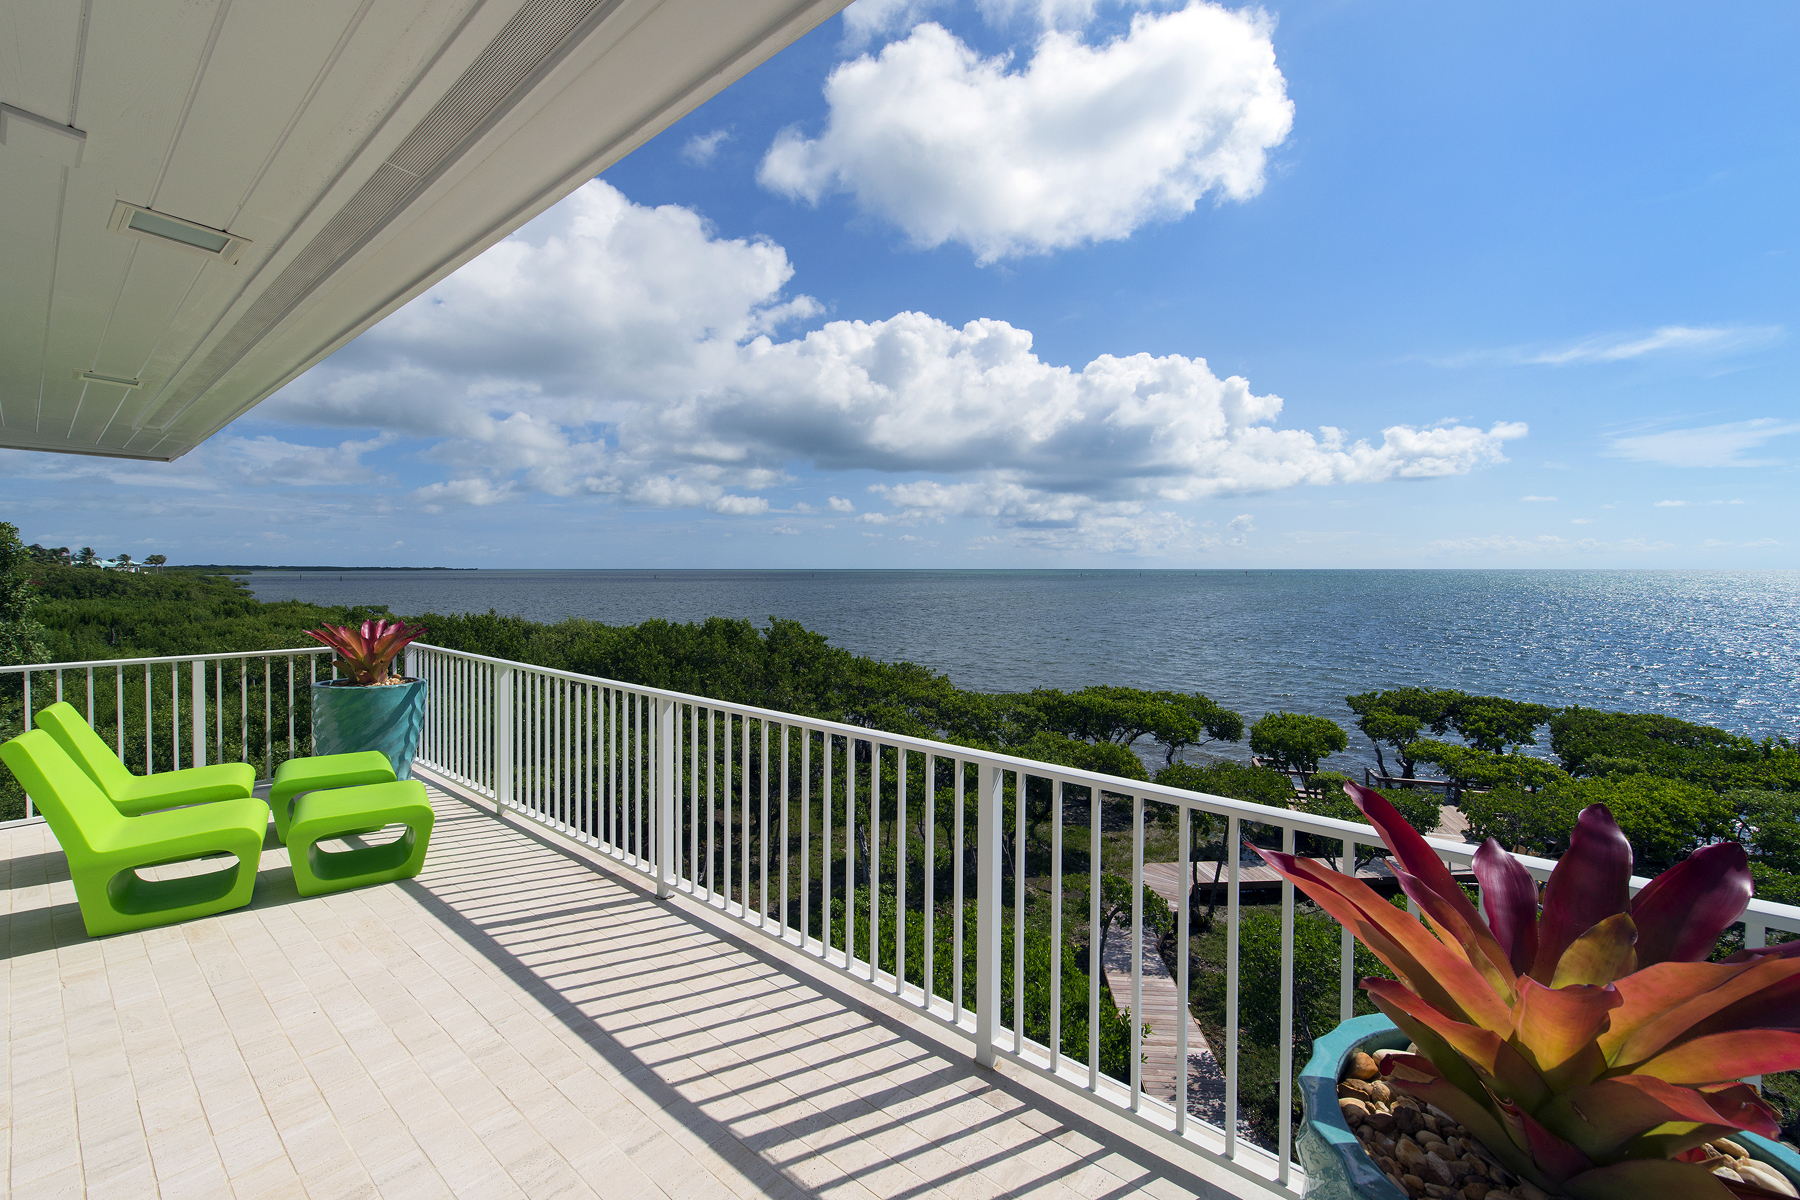 Moradia para Venda às Captivating Ocean Front Views at Ocean Reef 15 Sunrise Cay Drive Ocean Reef Community, Key Largo, Florida, 33037 Estados Unidos